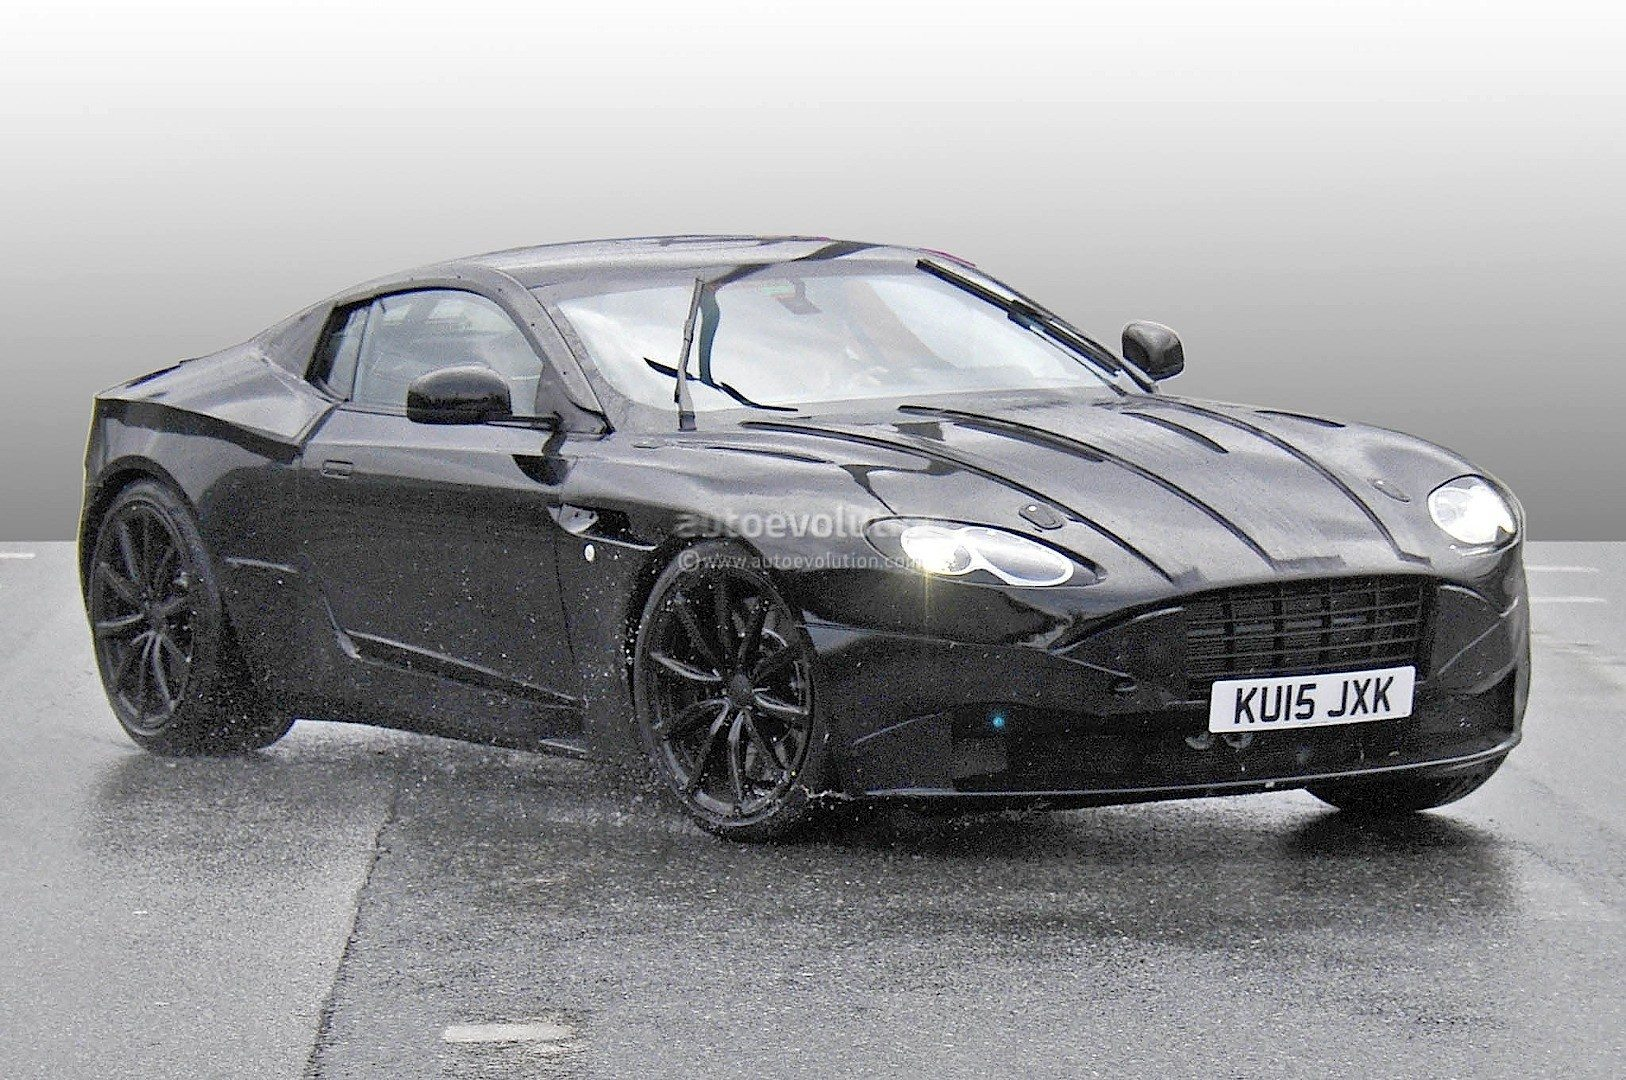 Photo 8 together with Astonmartinam310vanquishofficial 05 in addition Anderson germany aston martin dbs album furthermore 2019 Aston Martin Vantage Used V12 S Price Convertible additionally Aston Martin Unwraps V12 Vantage S Roadster. on 2015 aston martin db10 coupe